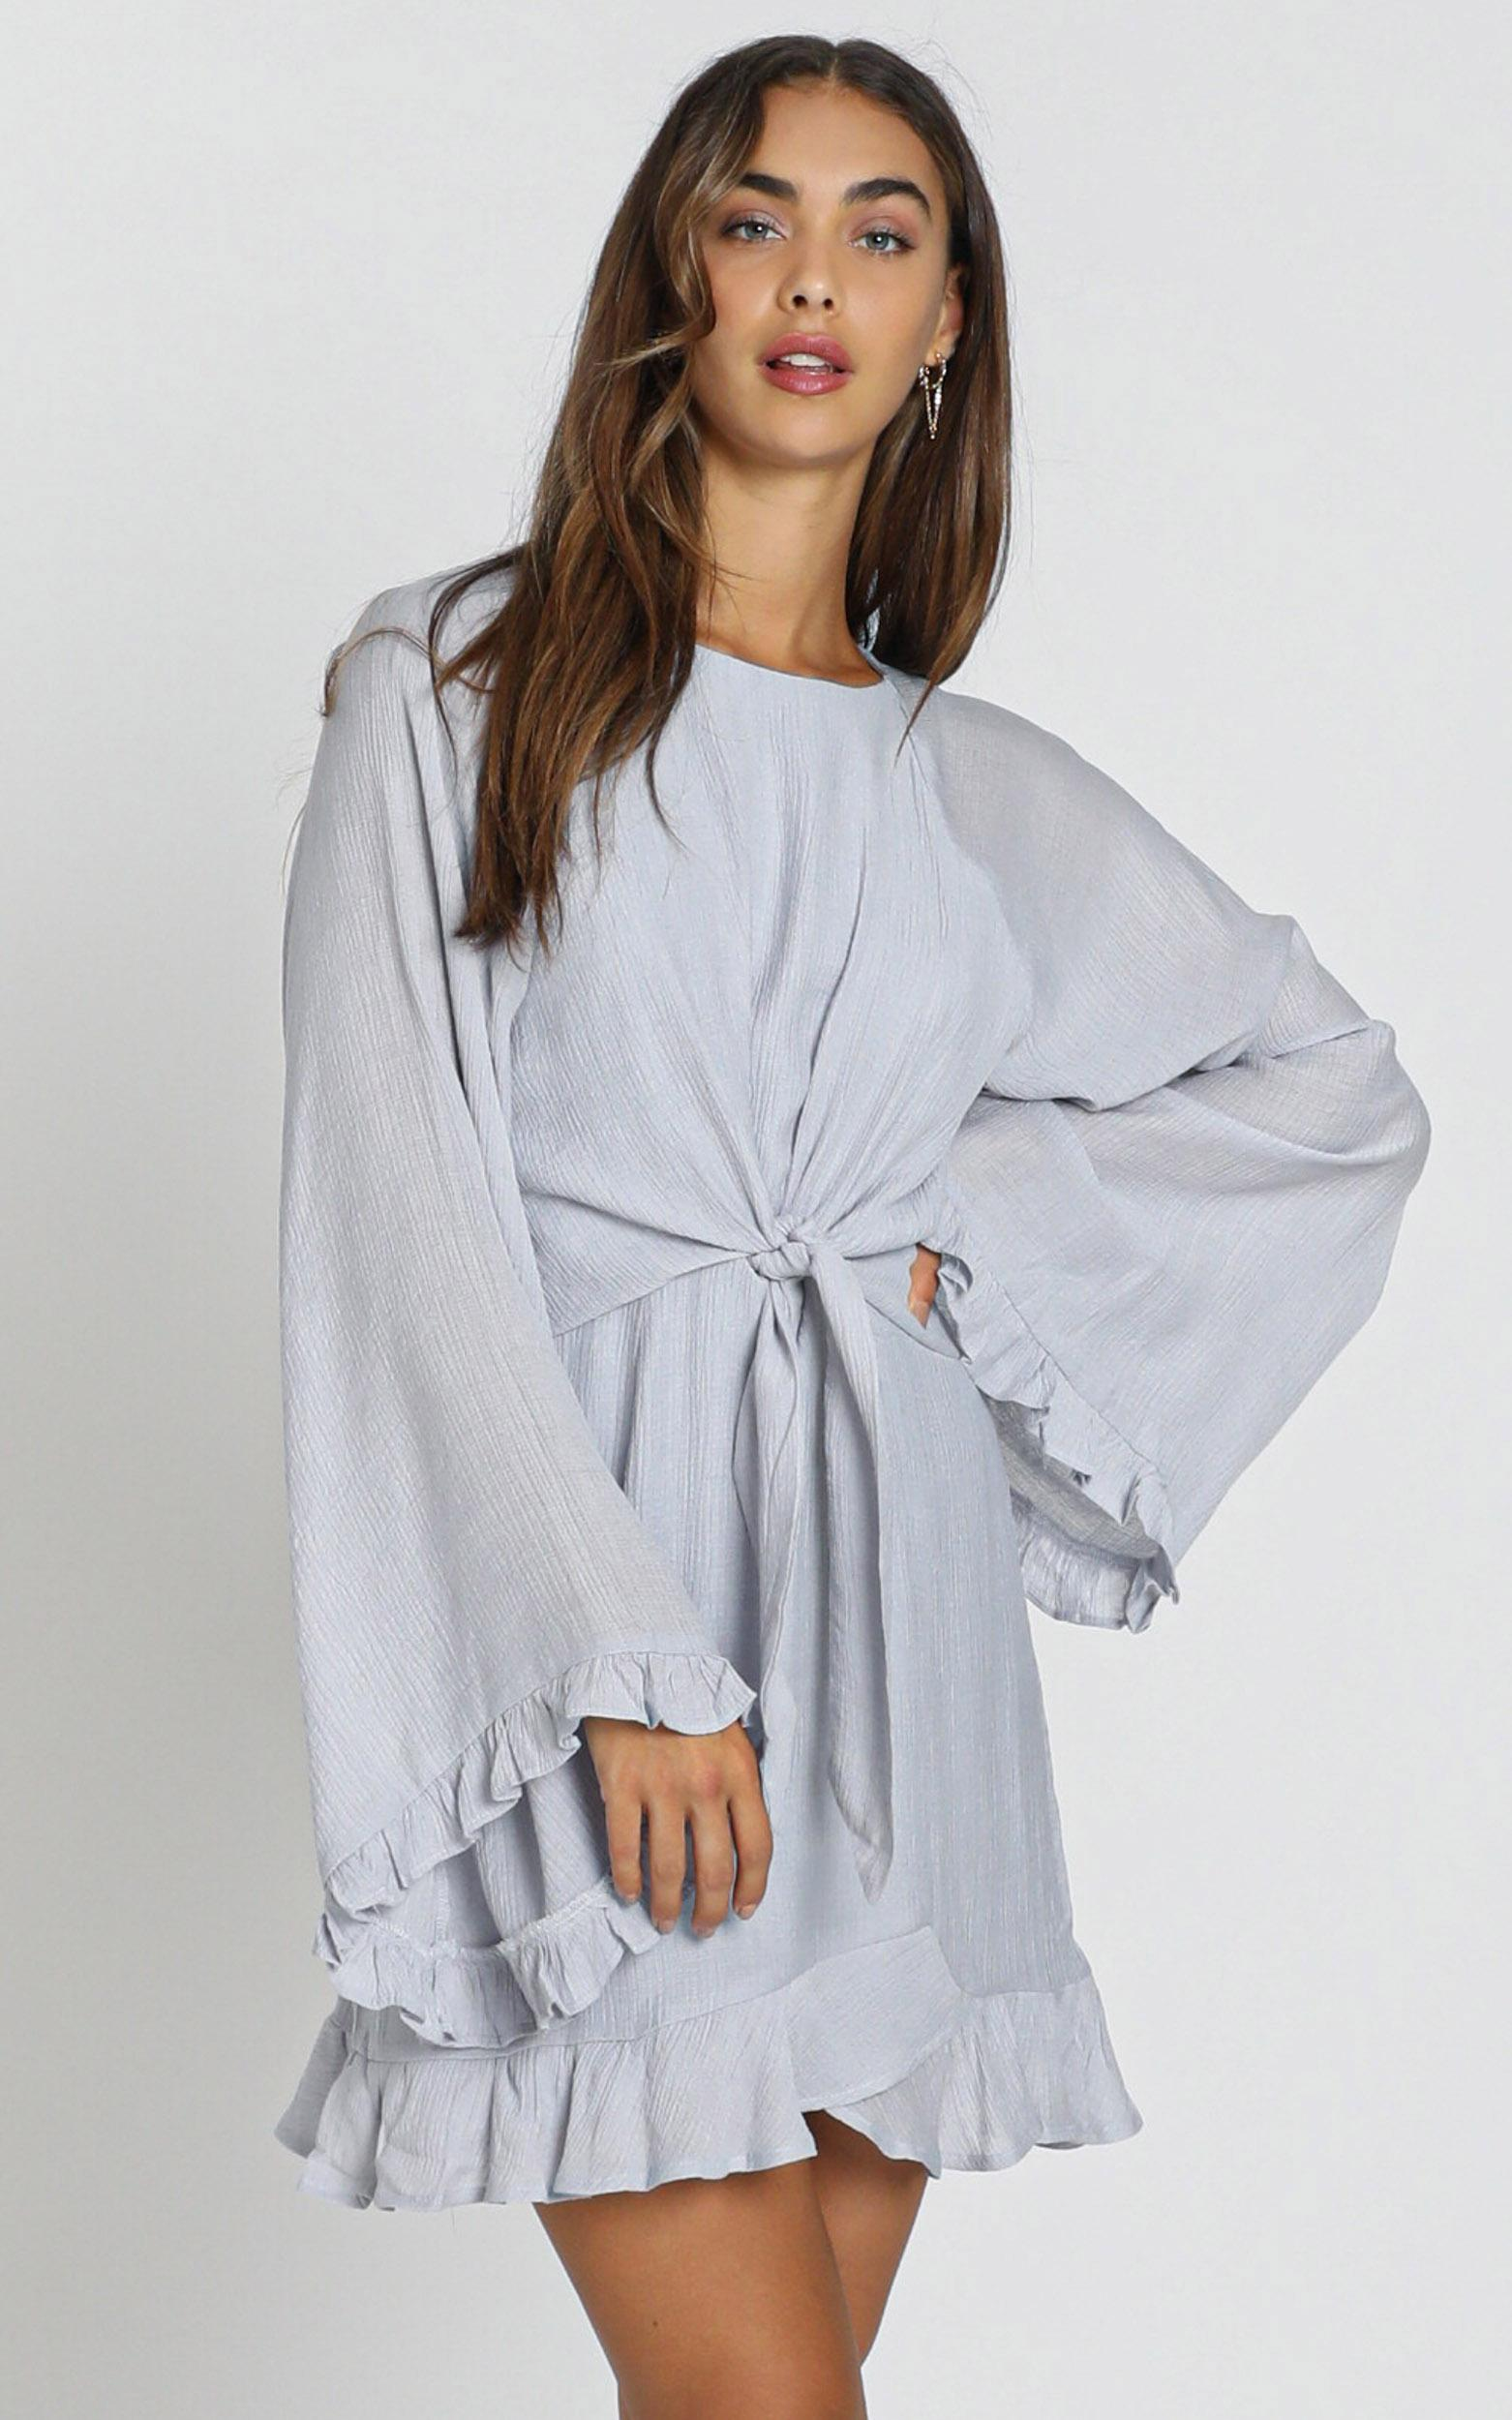 Ophelia Tie Front Dress in grey - 12 (L), Grey, hi-res image number null